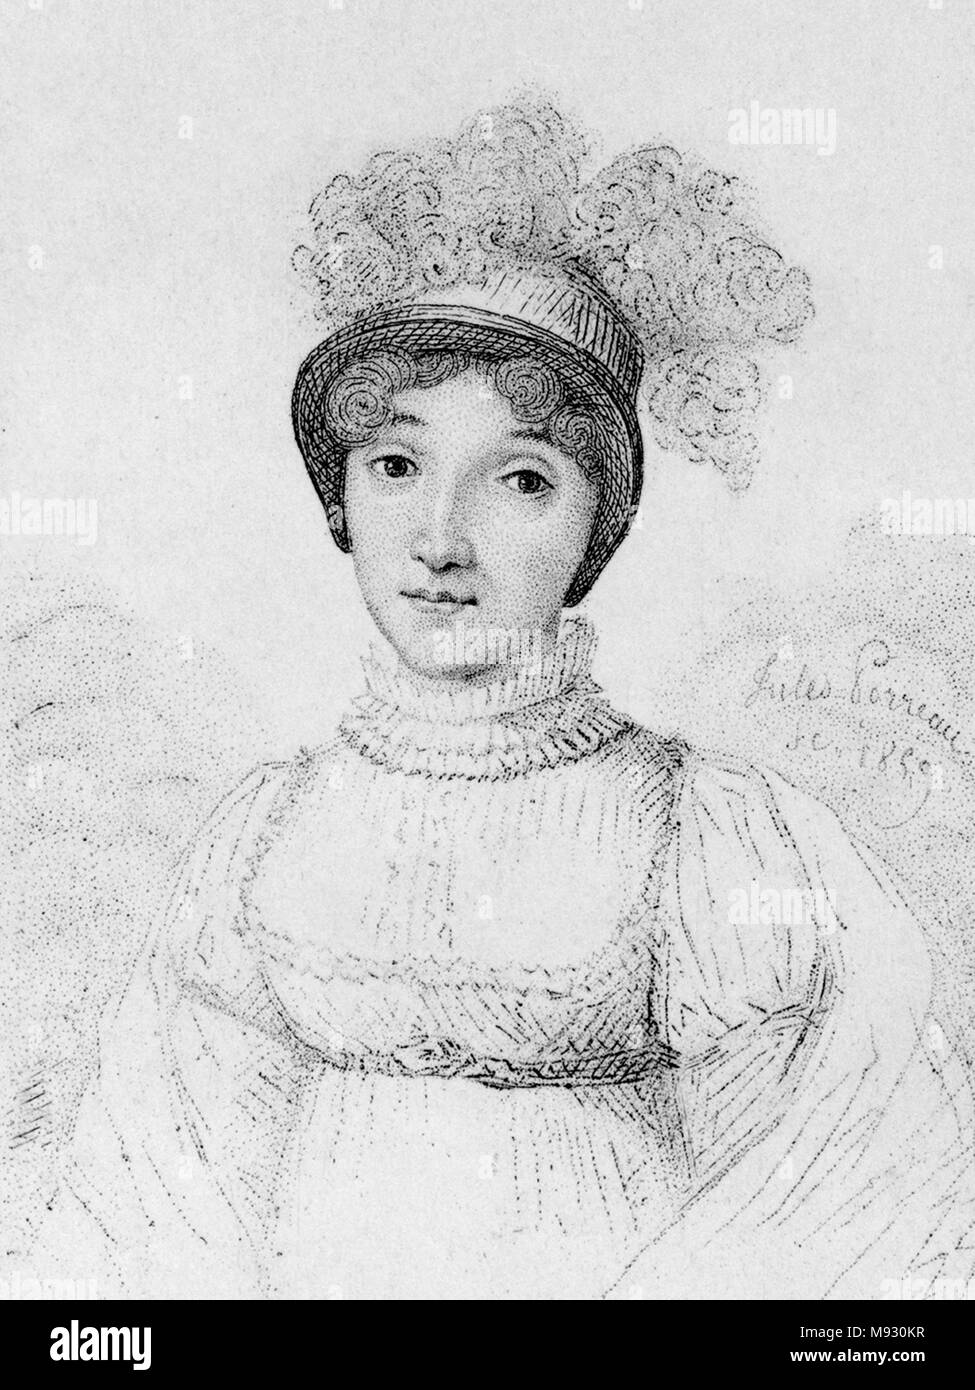 Sophie Blanchard (25 March 1778 – 6 July 1819) first woman to work as a professional balloonist, wife of ballooning pioneer Jean-Pierre Blanchard. Stock Photo